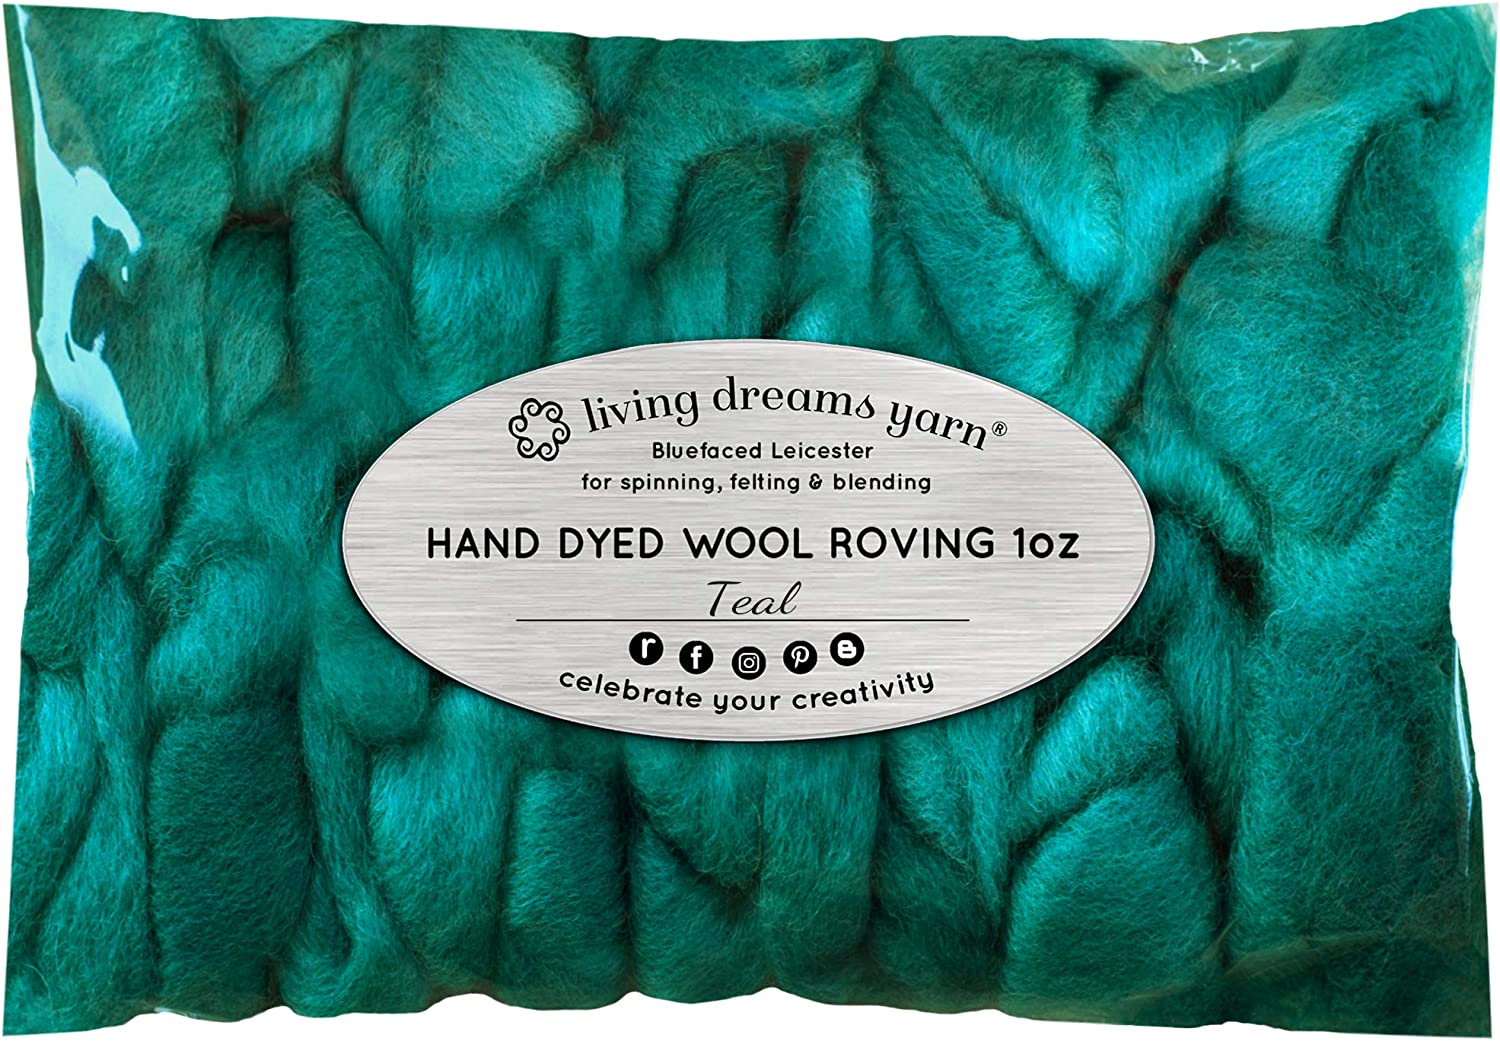 Artisanal Craft Fiber ideal for Felting Wall Hangings and Embellishments 1 Ounce Super Soft BFL Combed Top Pre-Drafted for Easy Hand Spinning Weaving Teal Wool Roving Hand Dyed